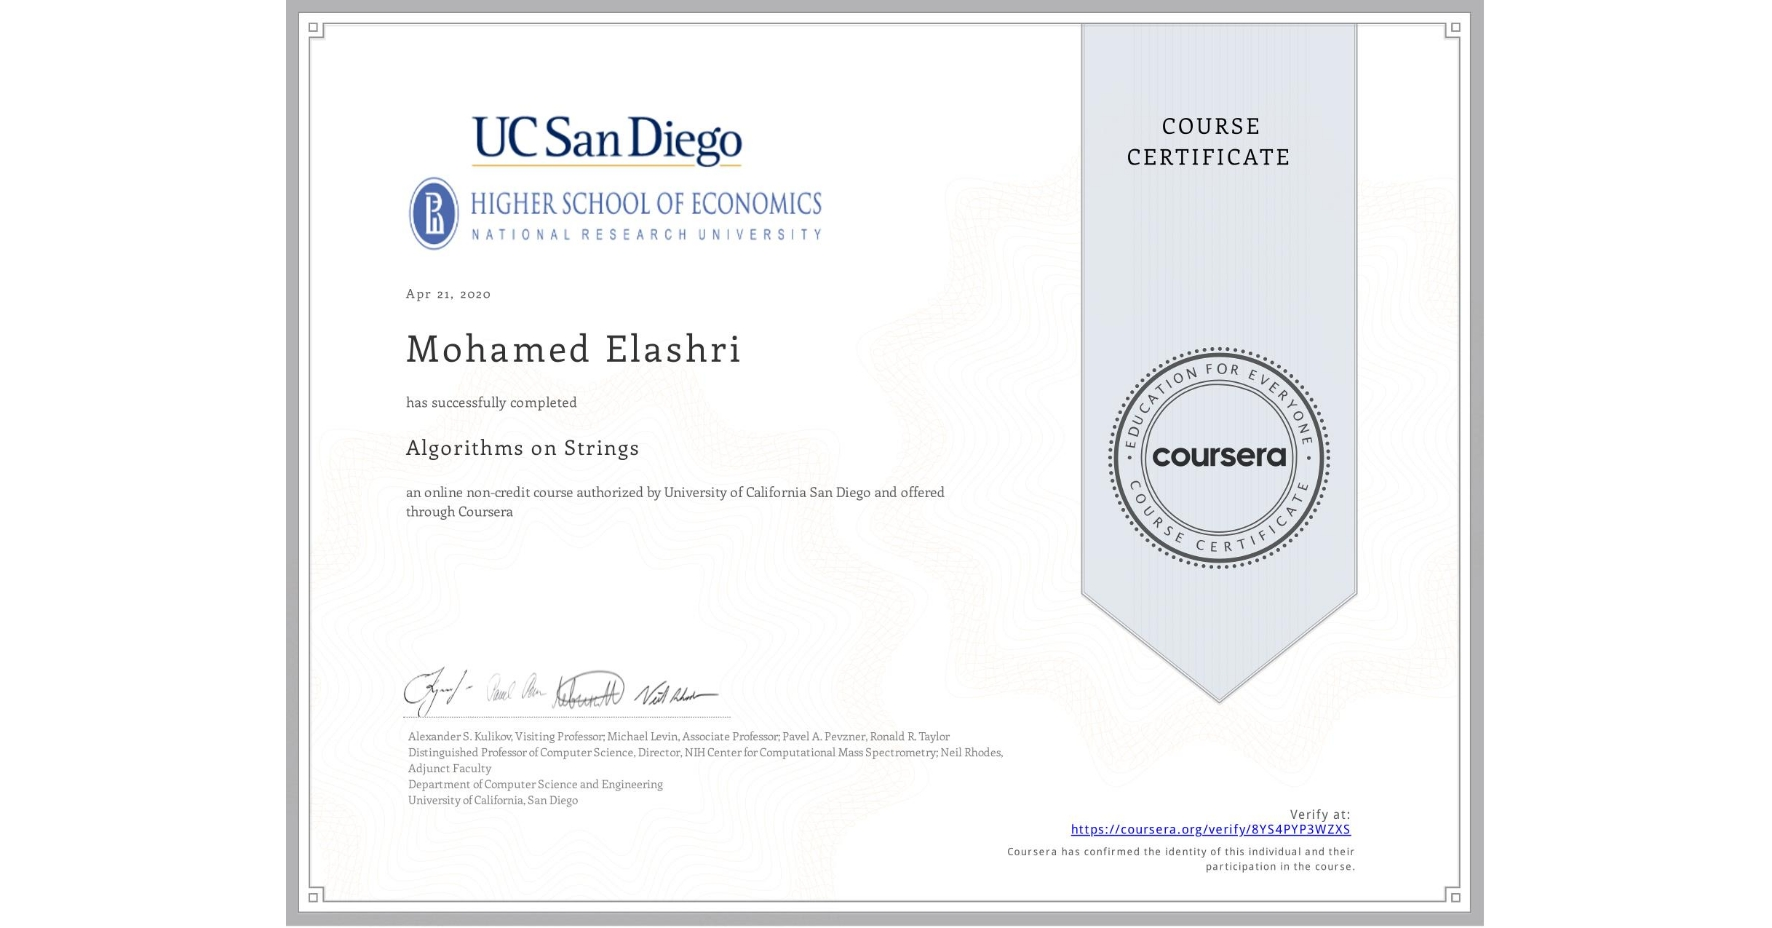 View certificate for Mohamed Elashri, Algorithms on Strings, an online non-credit course authorized by University of California San Diego & National Research University Higher School of Economics and offered through Coursera